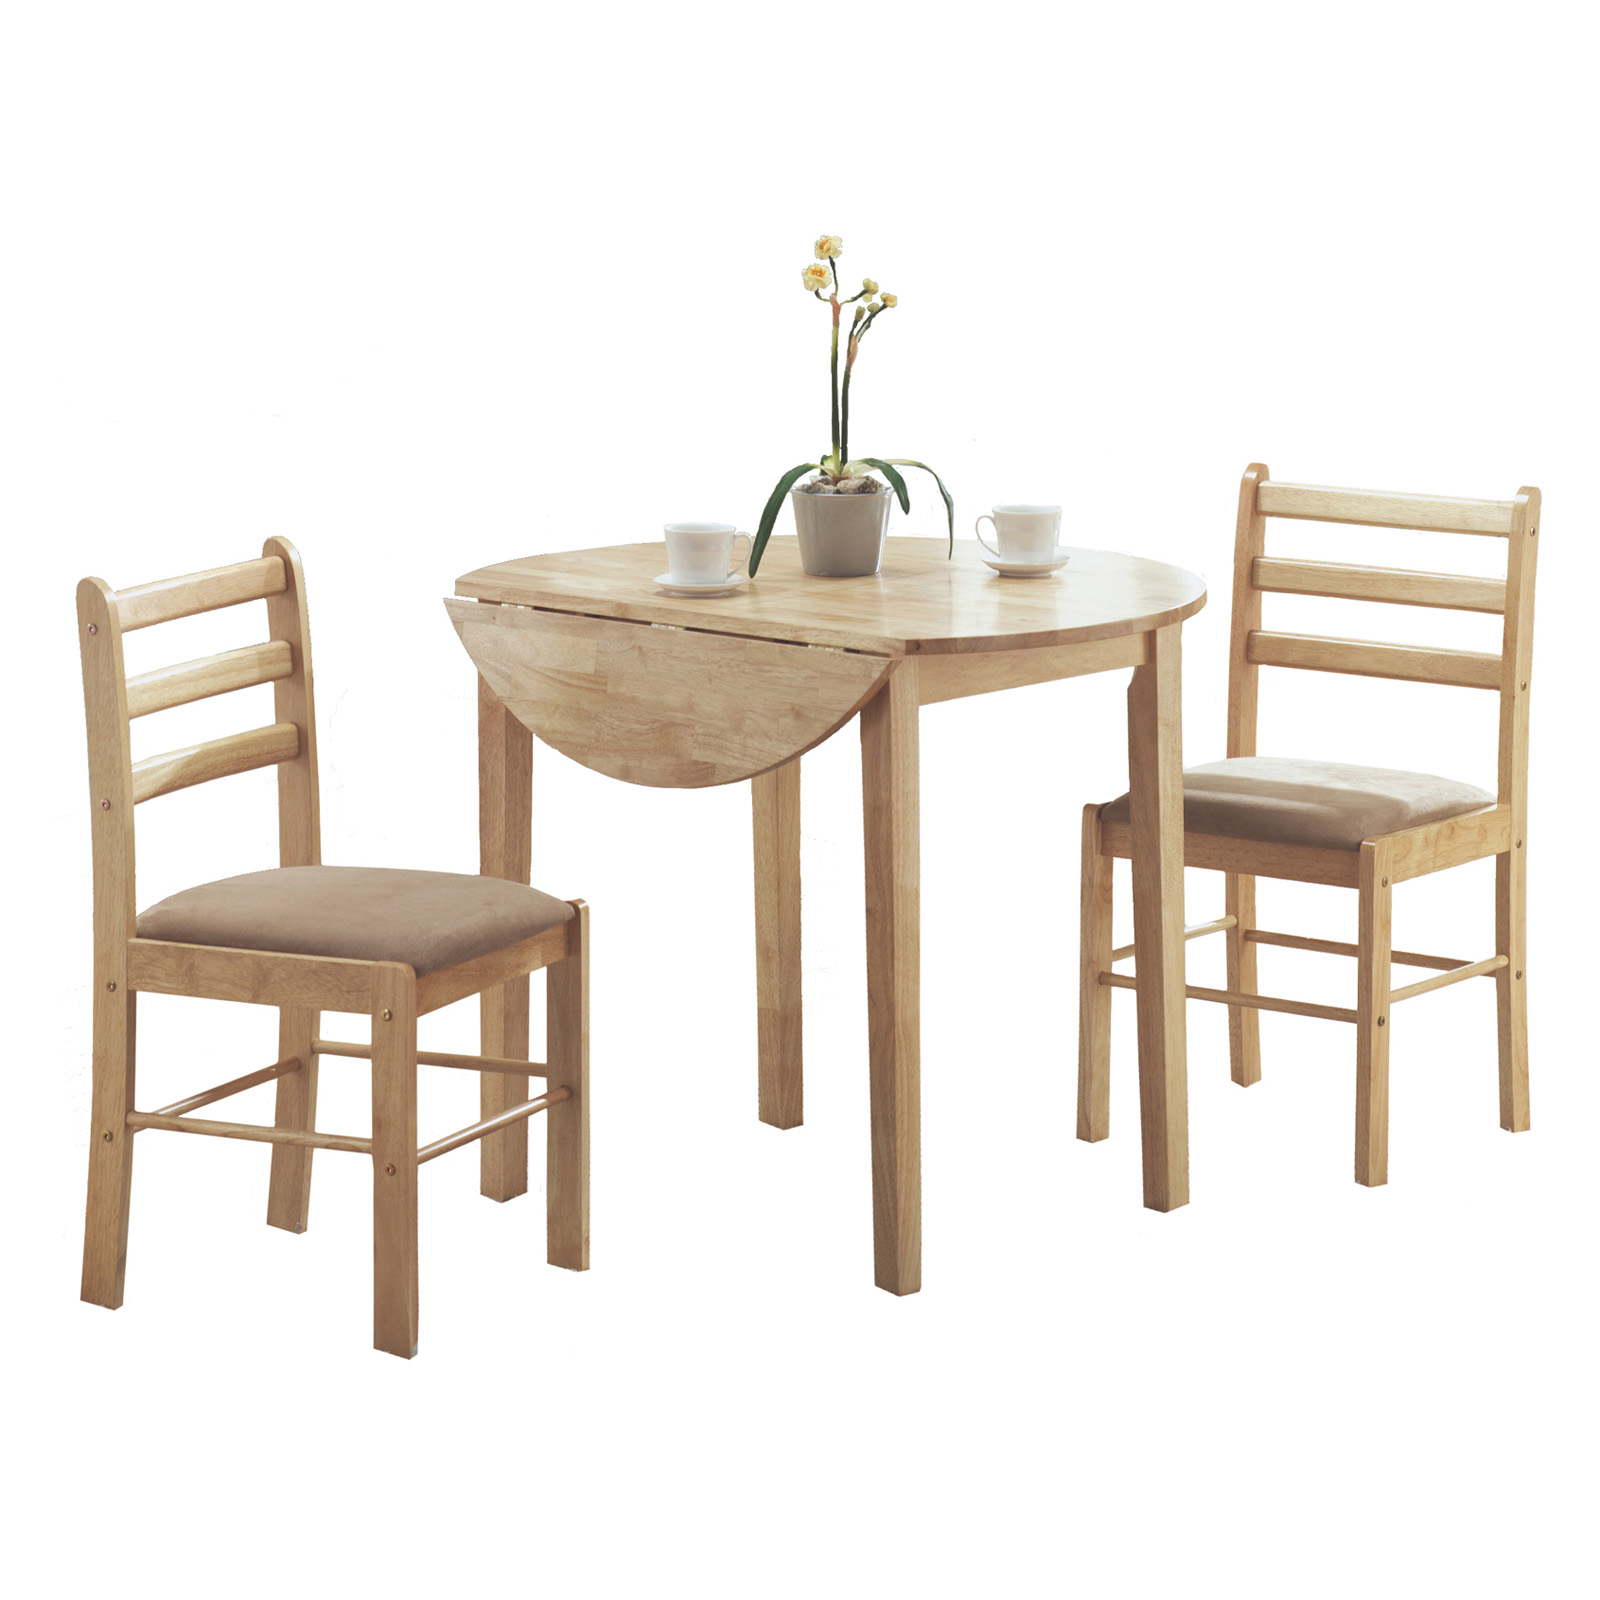 Target Kitchen Sets: Monarch Elba 3 Piece Dining Table Set